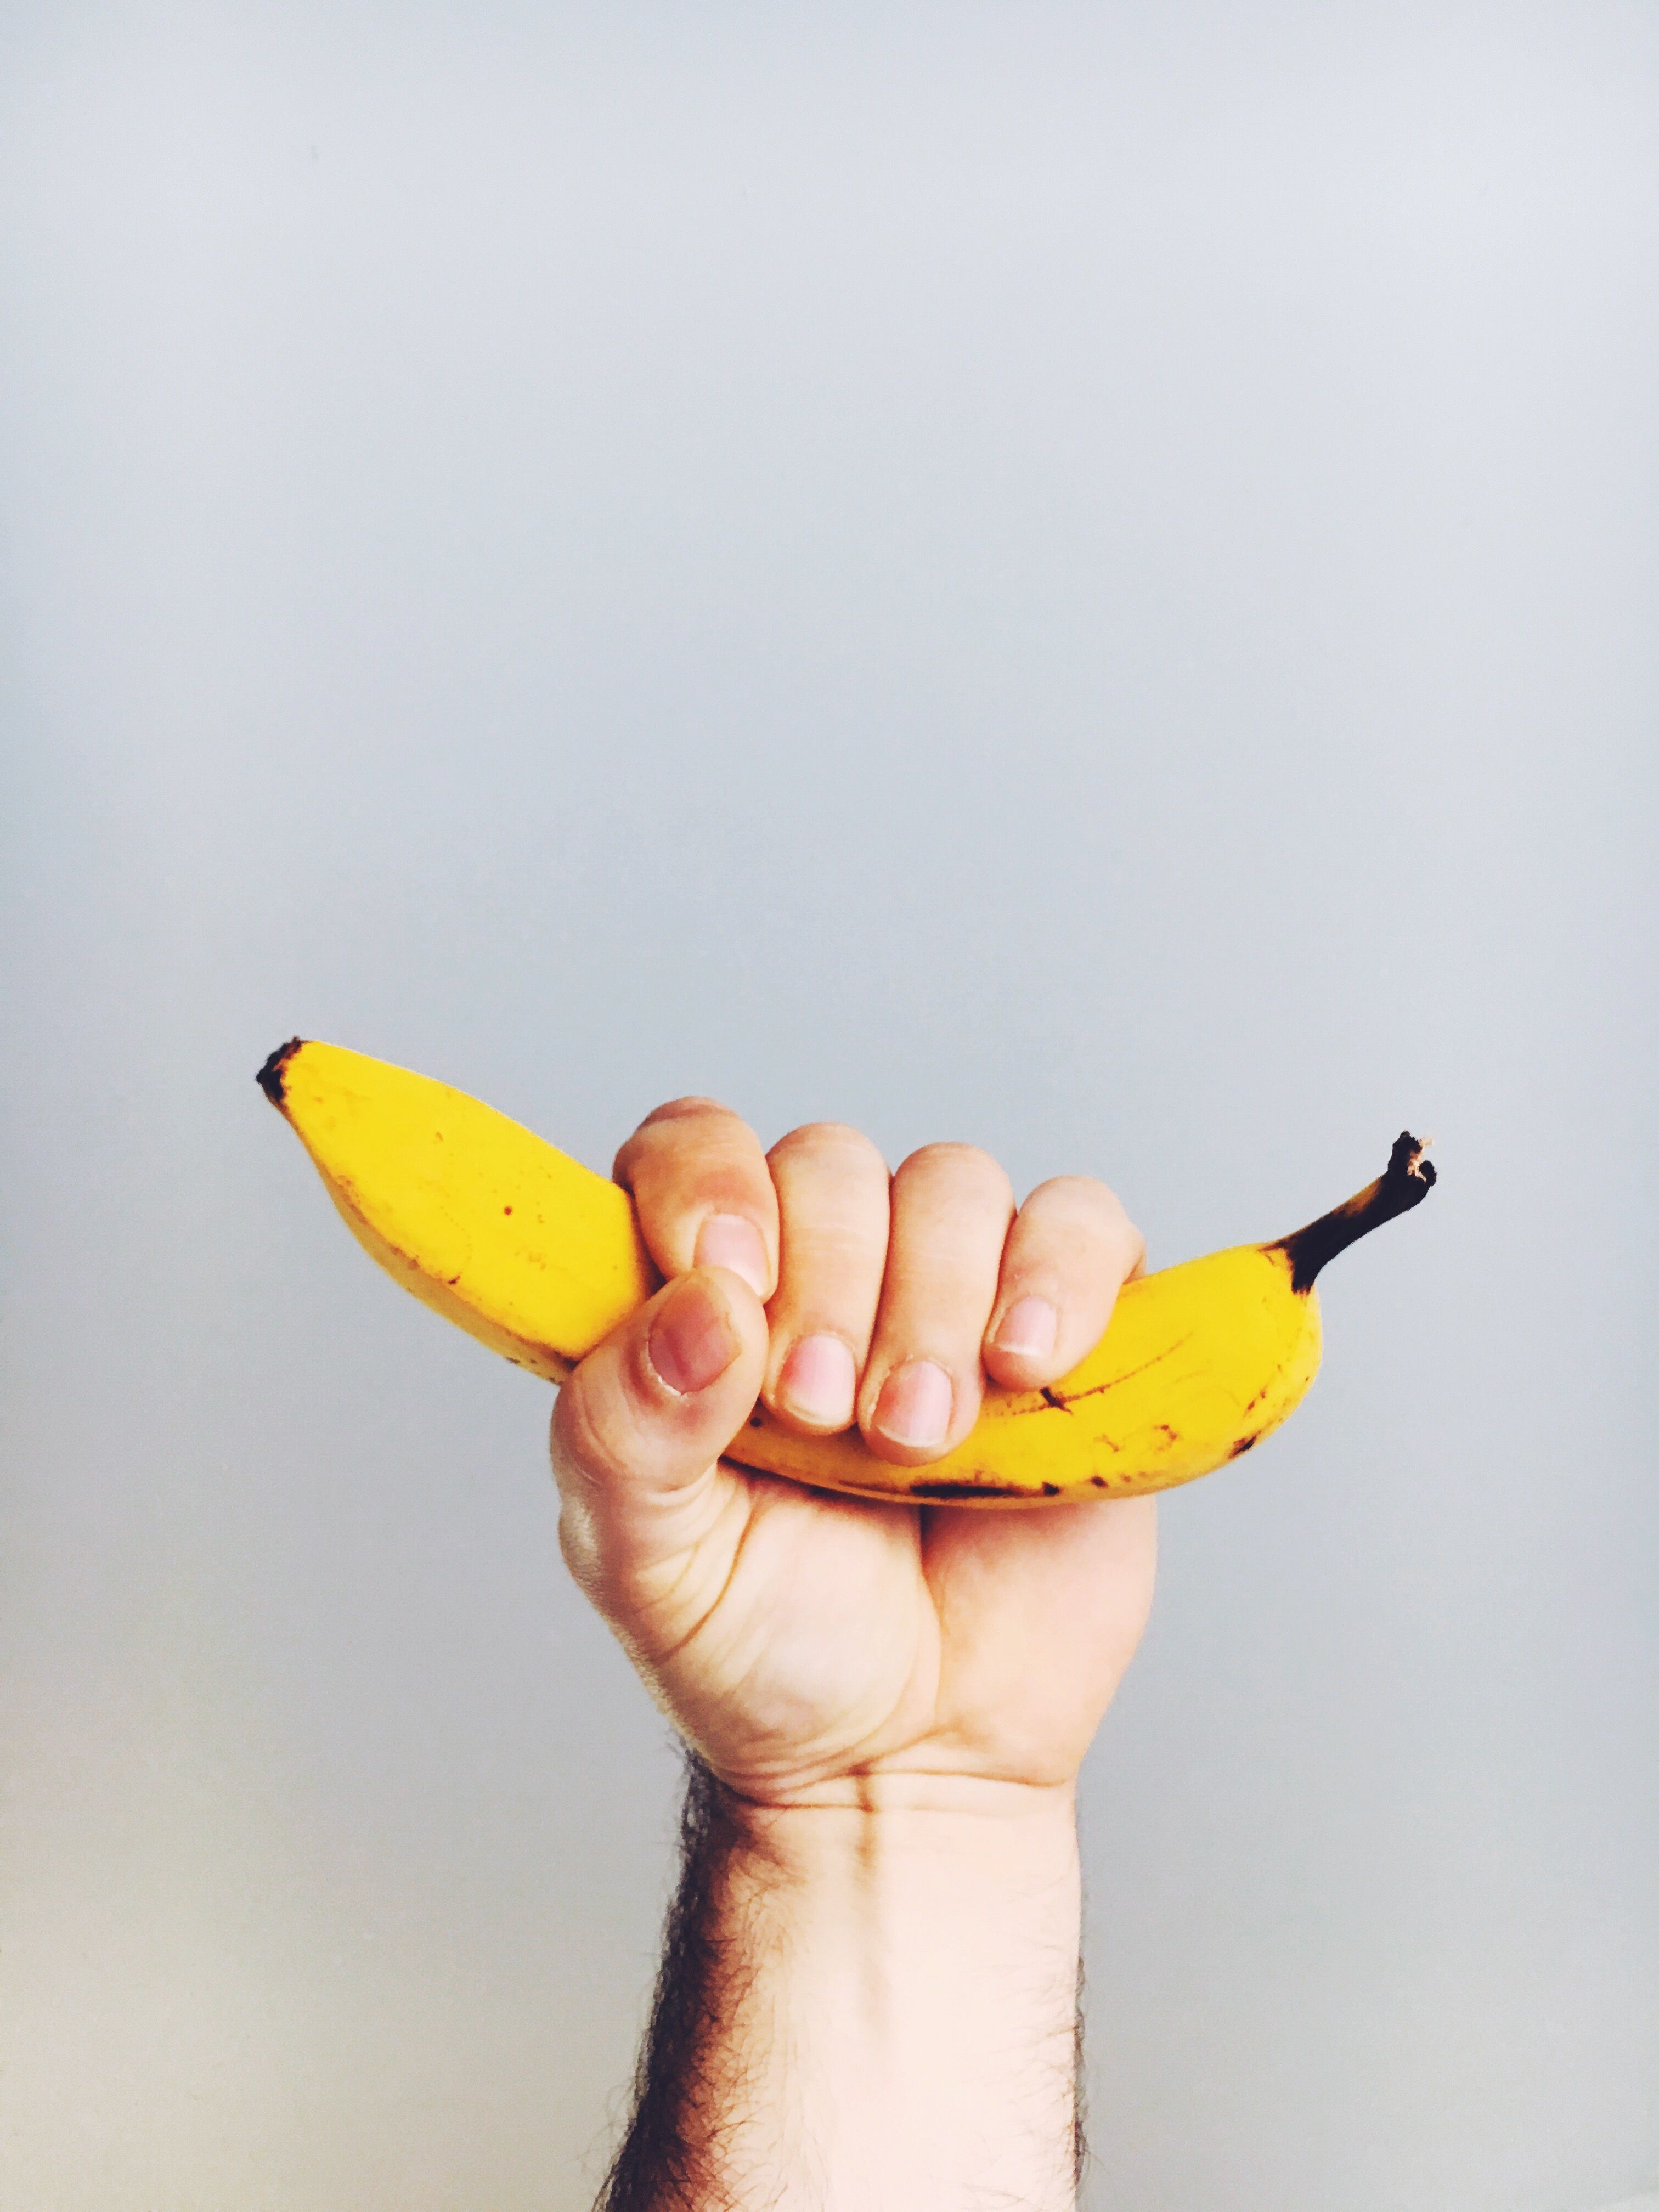 Is it safe to masturbate with a banana